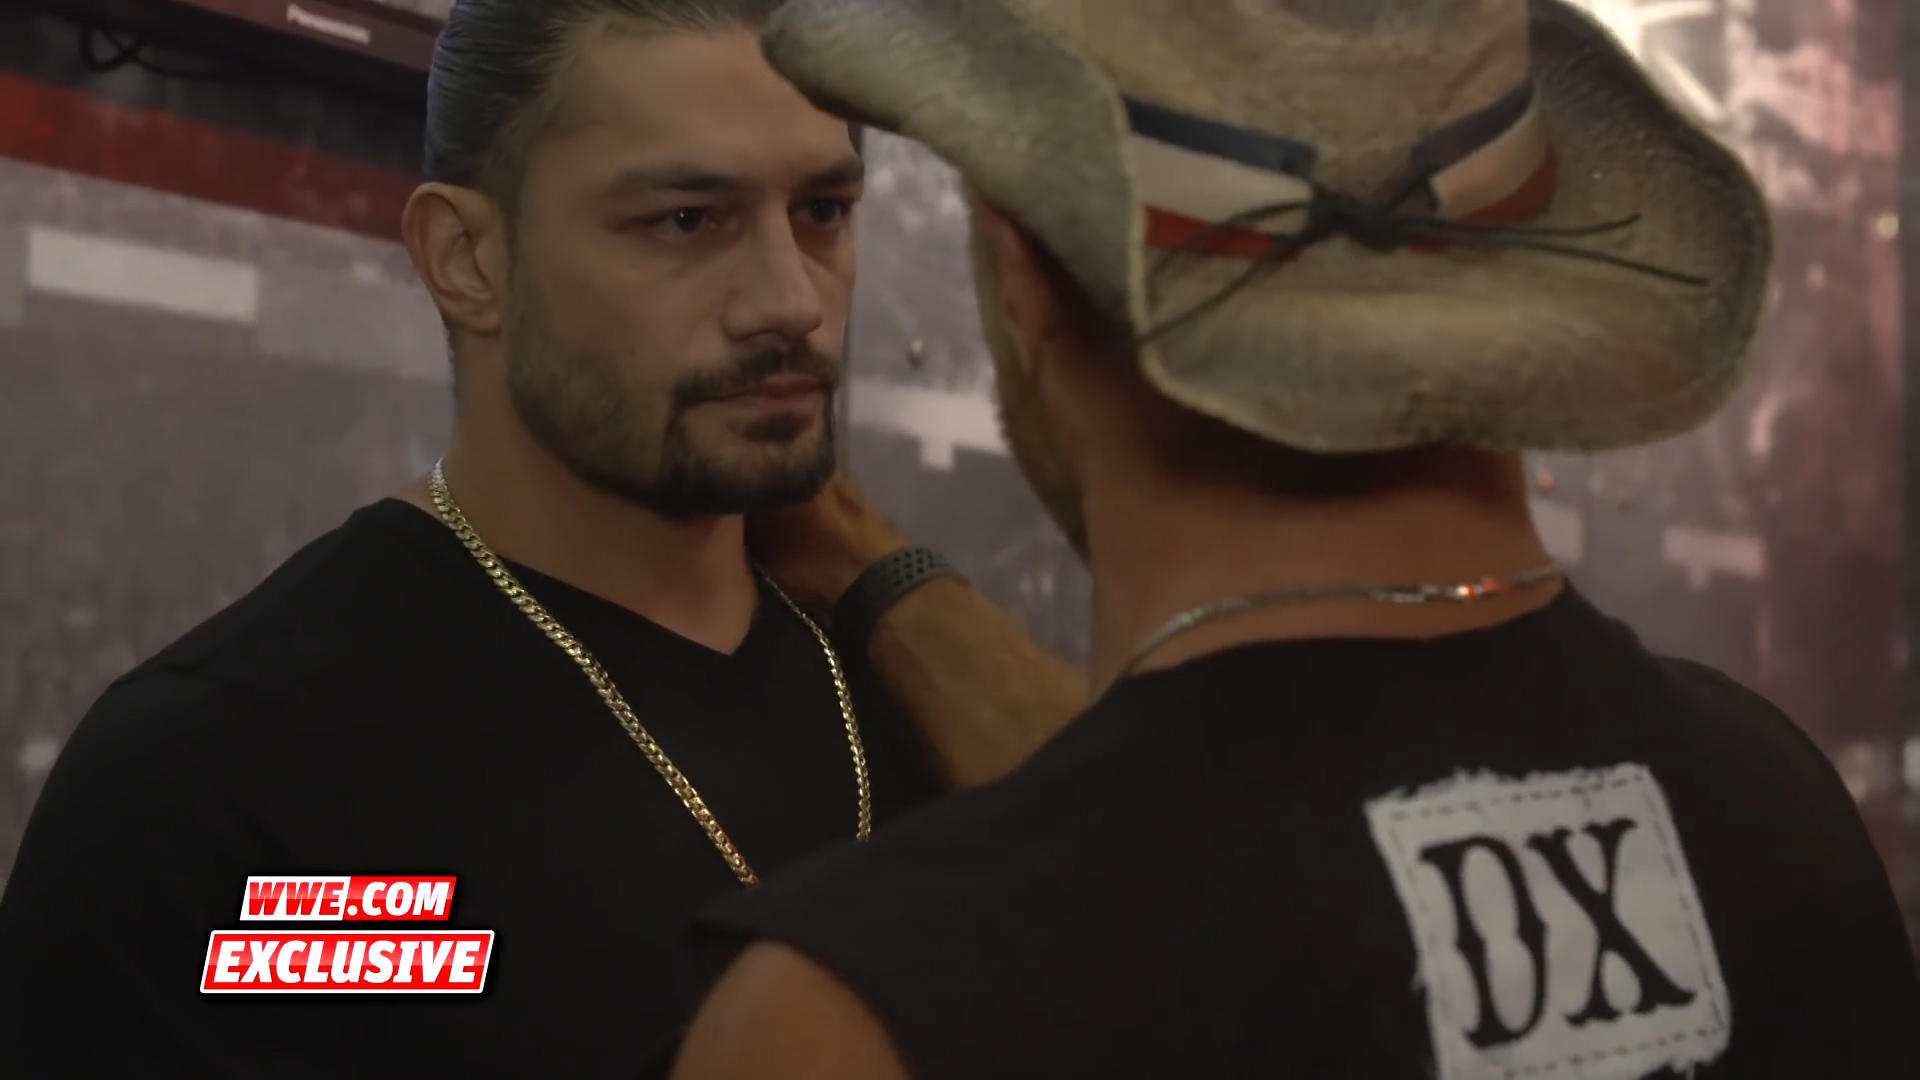 WWE superstar Roman Reigns to appear on Monday Night Raw, address cancer battle